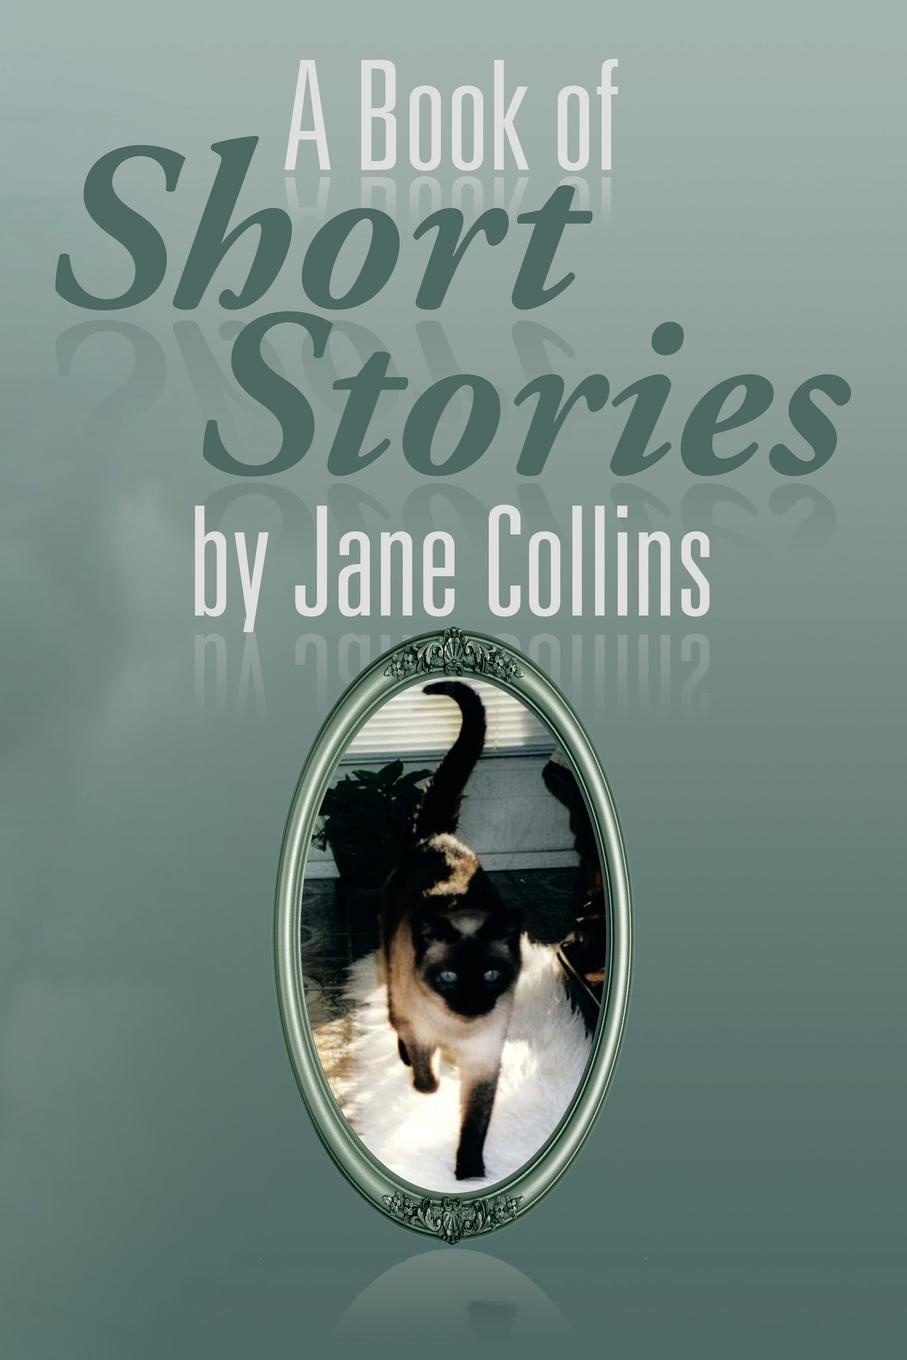 Jane Collins A Book of Short Stories by Jane Collins